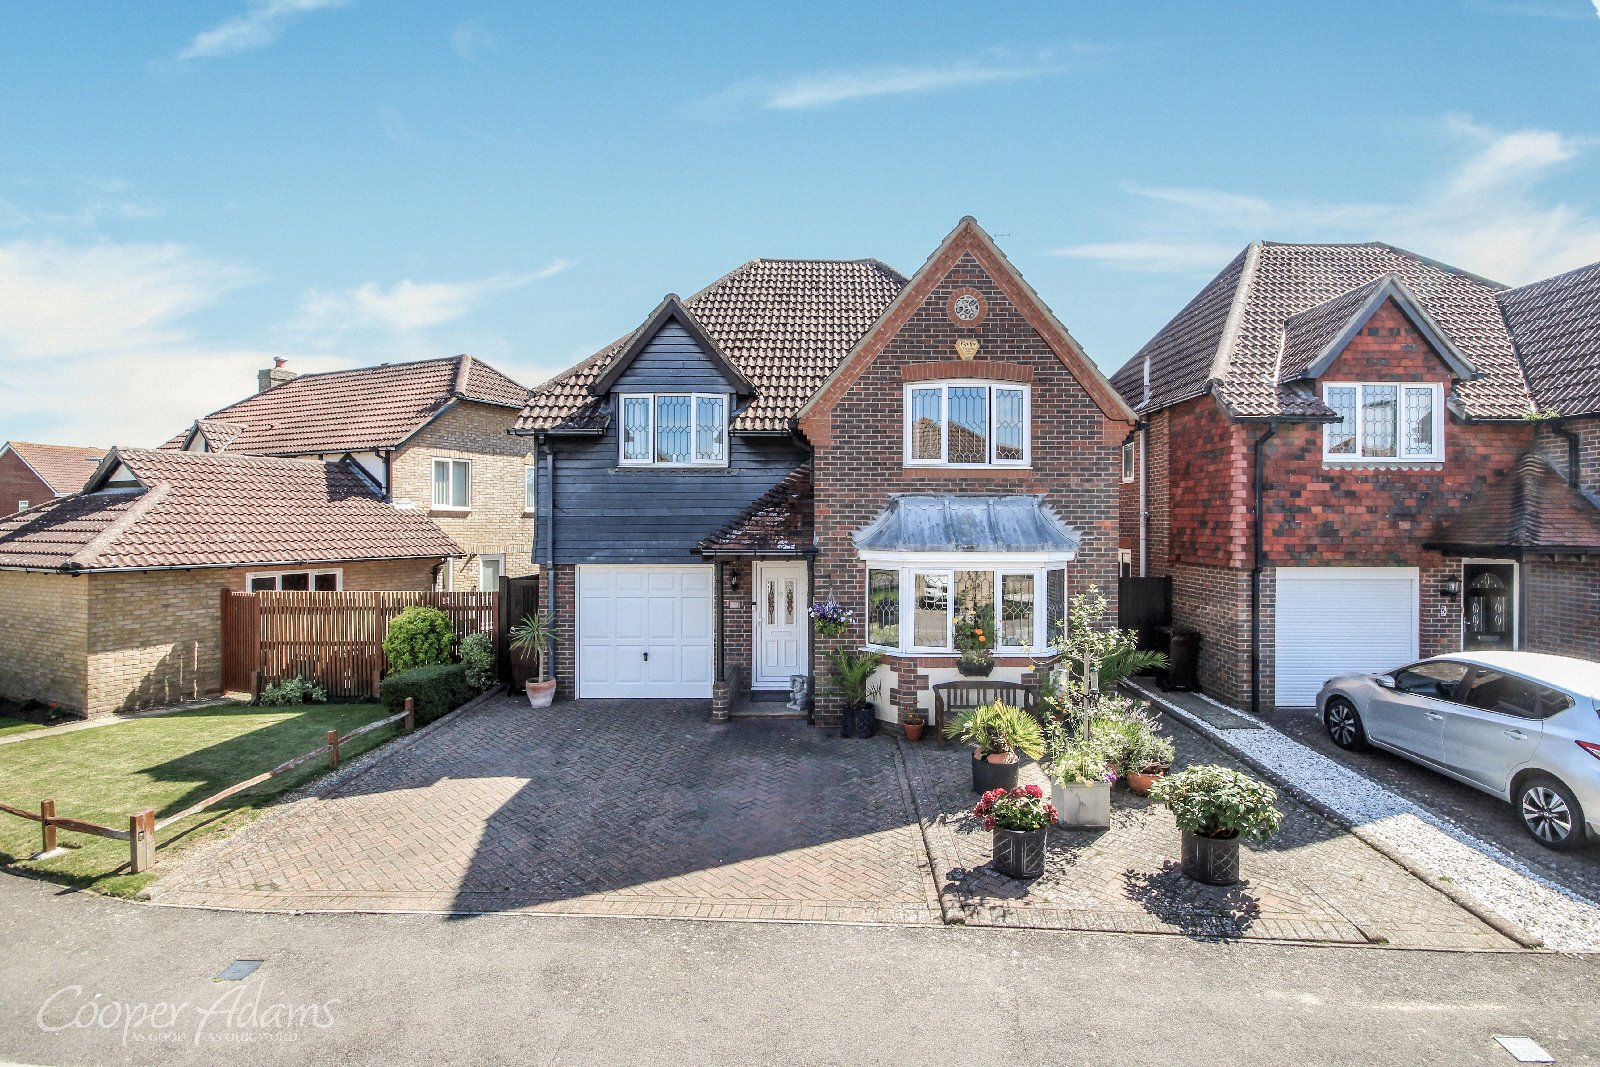 4 bed house for sale in Chatsworth Drive, Rustington, BN16